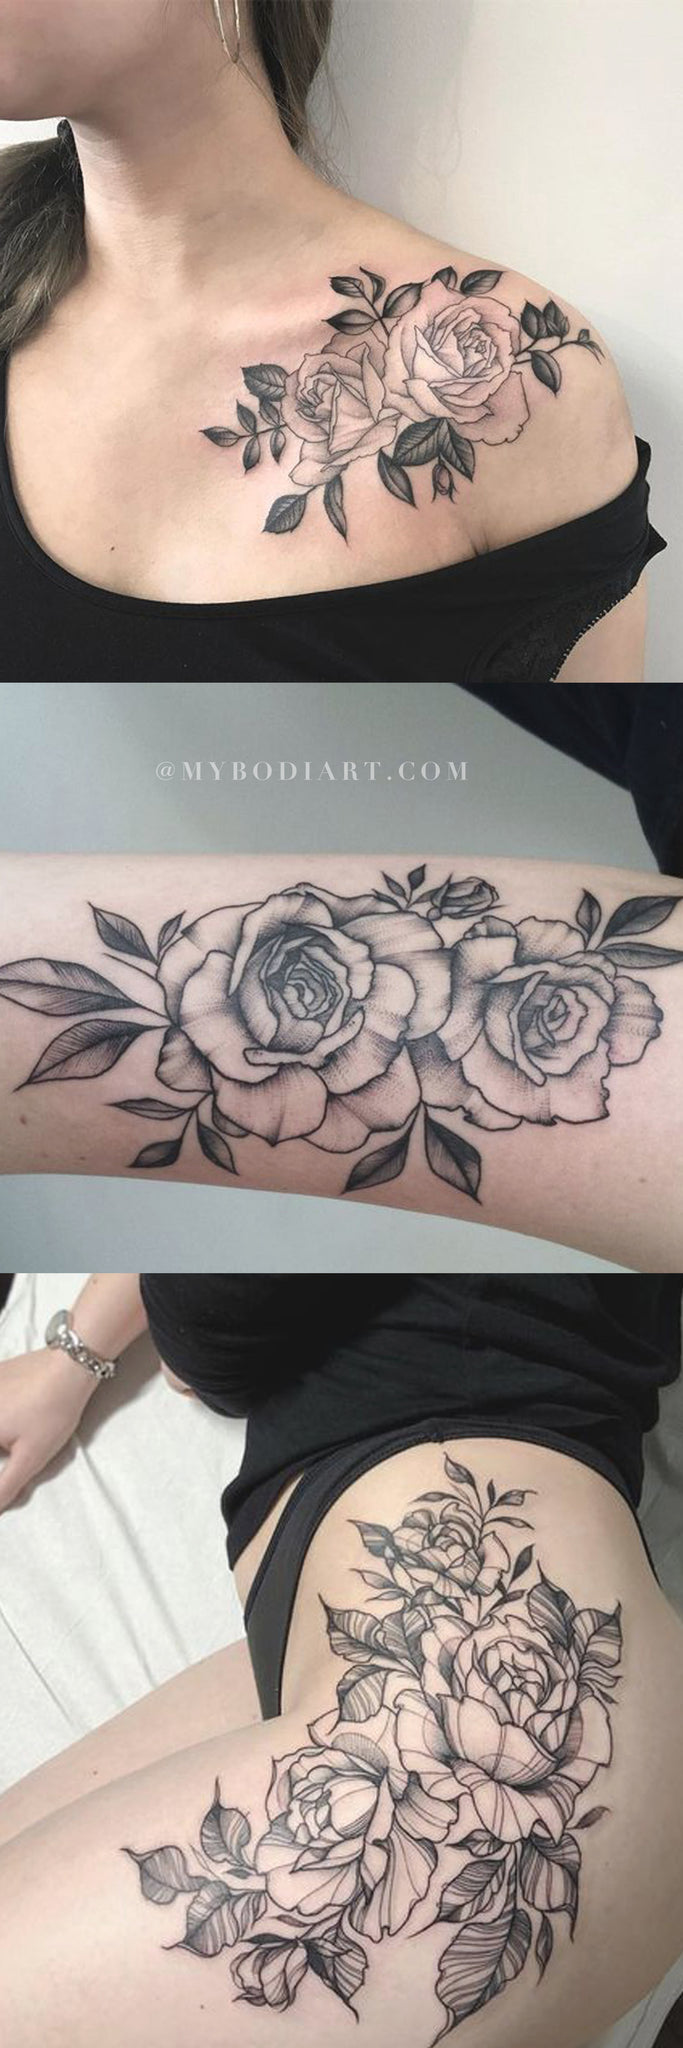 Traditional Trendy Rose Tattoo Ideas for Women - Floral Flower Outline Shoulder Thigh Arm Tattoos - www.MyBodiArt.com